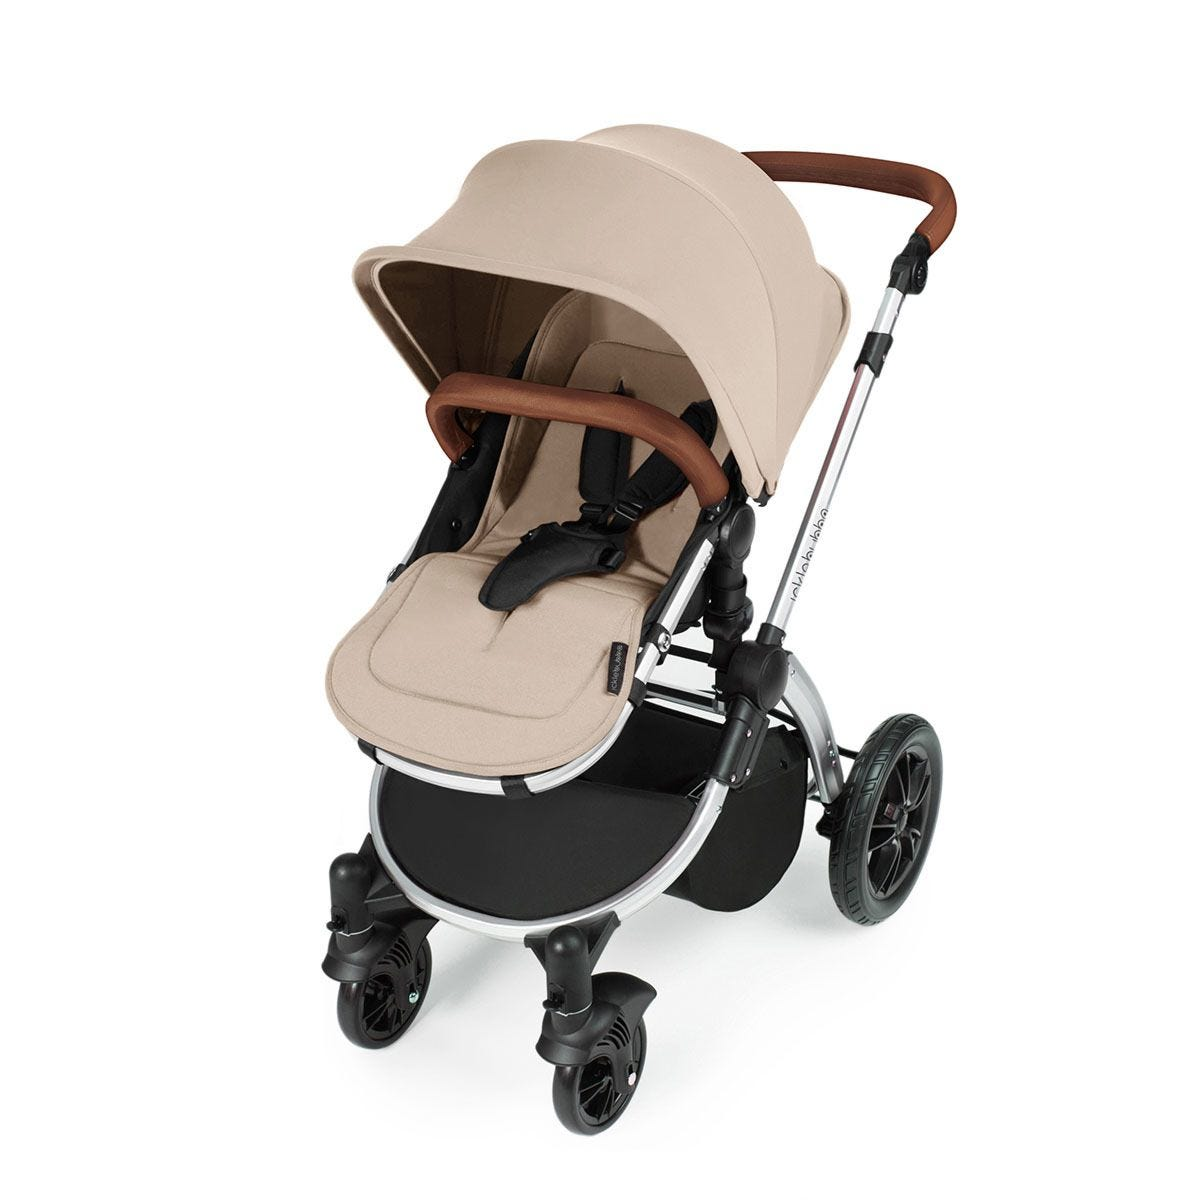 Ickle Bubba Stomp V3 i-Size Travel System with Isofix Base -Sand on Silver with Tan Handles